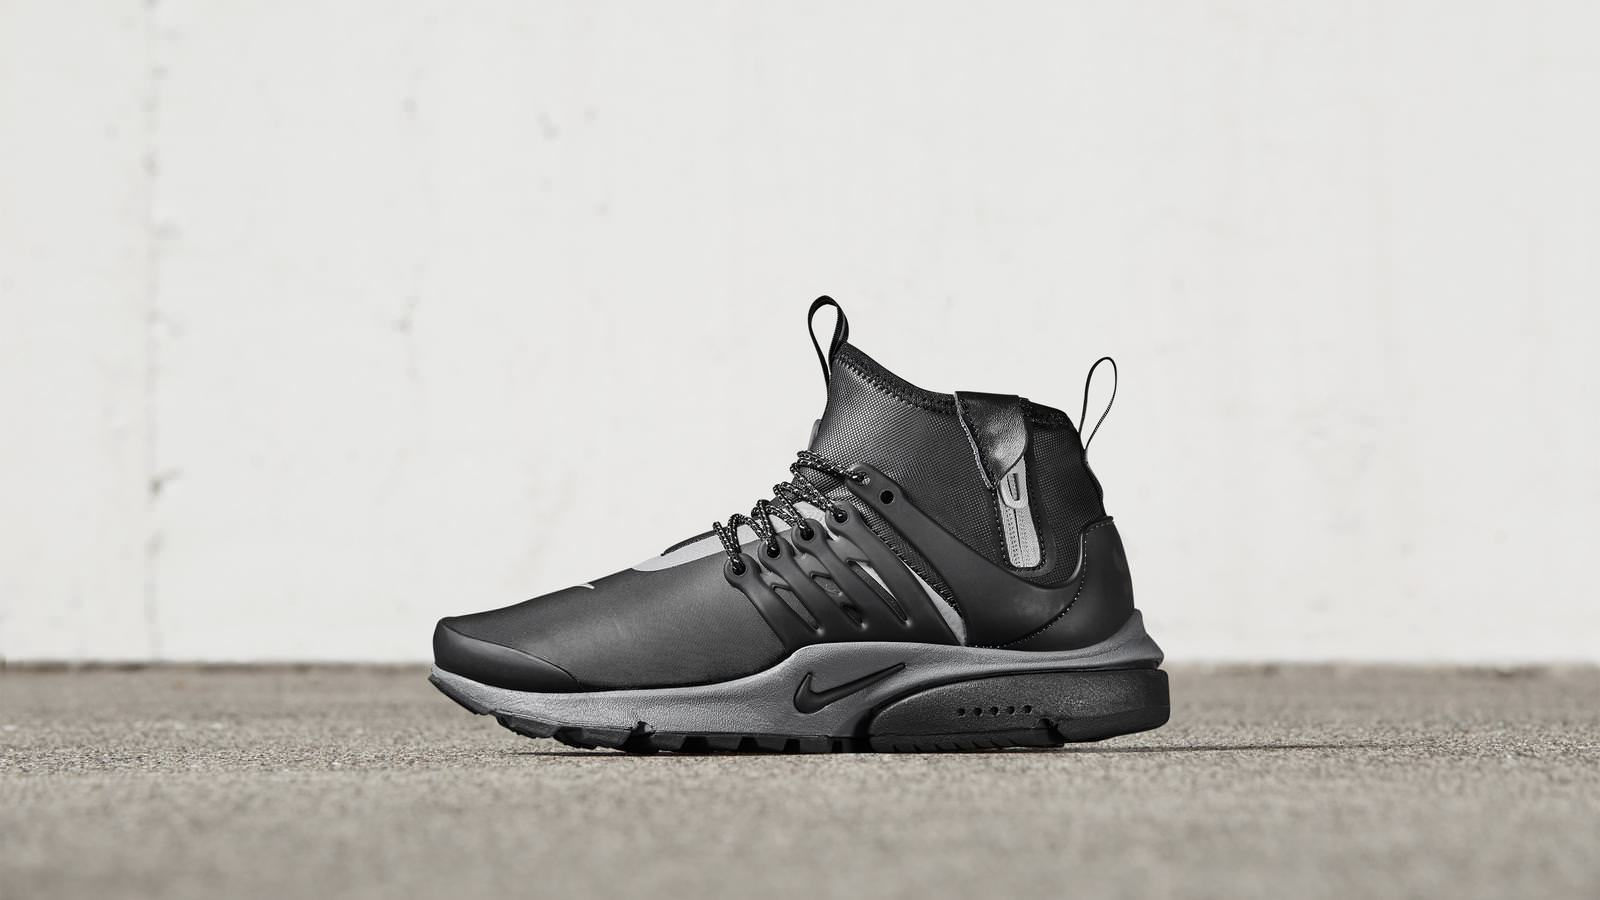 581947a2d2a44a8119f2e8ba_161026_footwear_sneakerboot_p_0073r_hd_1600